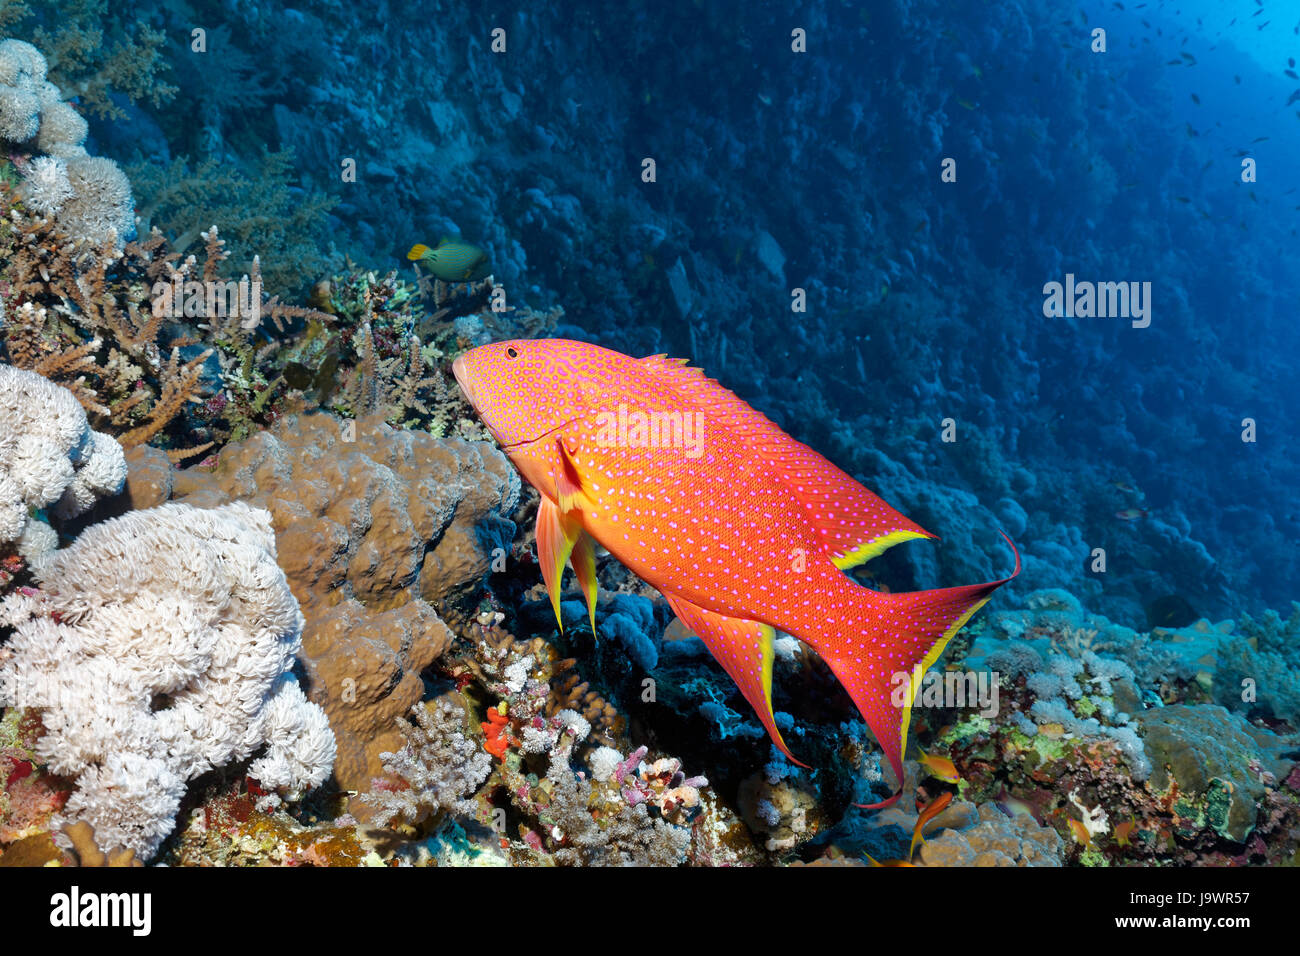 Yellow-edged lyretail (Variola louti) swimming over coral reef, Red Sea, Egypt - Stock Image